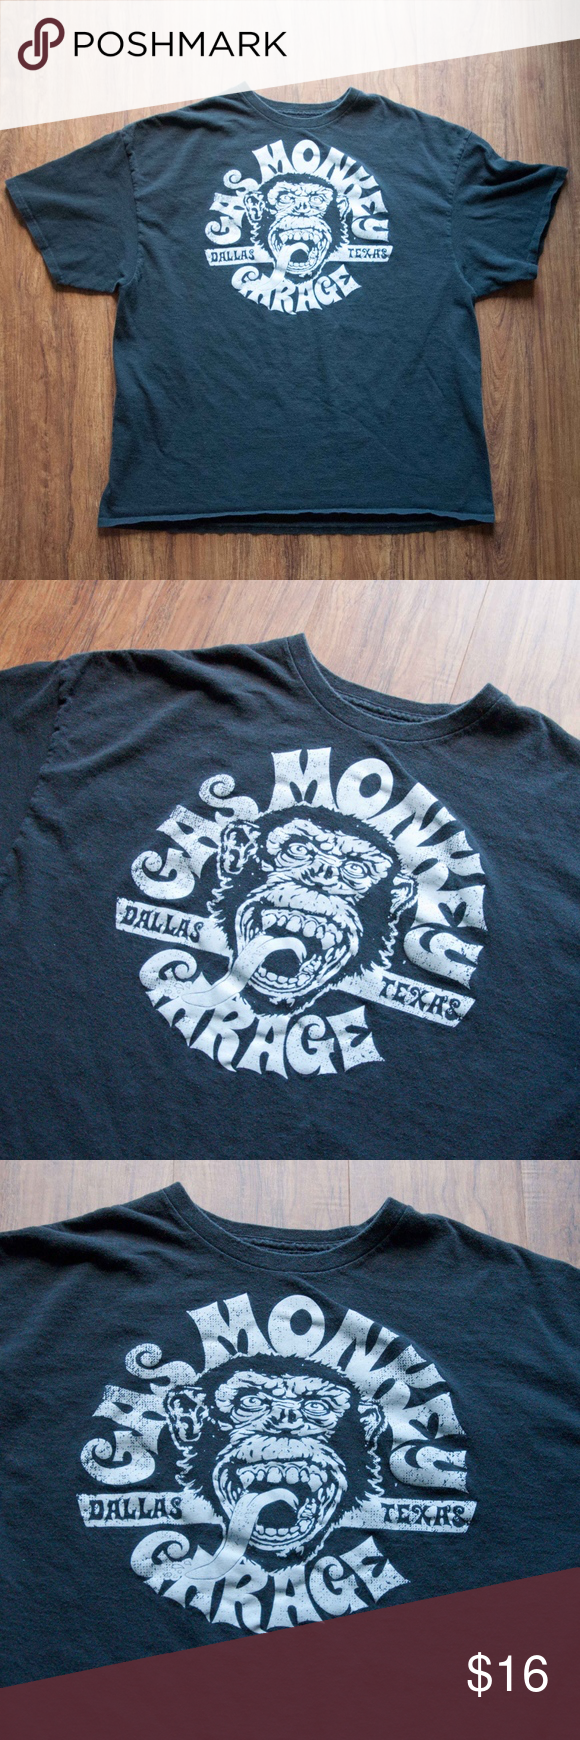 Gas Monkey Garage Dallas Texas Graphic T-shirt XXL Gas Monkey Garage Dallas Texas black graphic t-shirt with white logo.  Nice condition.  Size XXL. Gas Monkey Shirts Tees - Short Sleeve #gasmonkeygarage Gas Monkey Garage Dallas Texas Graphic T-shirt XXL Gas Monkey Garage Dallas Texas black graphic t-shirt with white logo.  Nice condition.  Size XXL. Gas Monkey Shirts Tees - Short Sleeve #gasmonkeygarage Gas Monkey Garage Dallas Texas Graphic T-shirt XXL Gas Monkey Garage Dallas Texas black grap #gasmonkeygarage